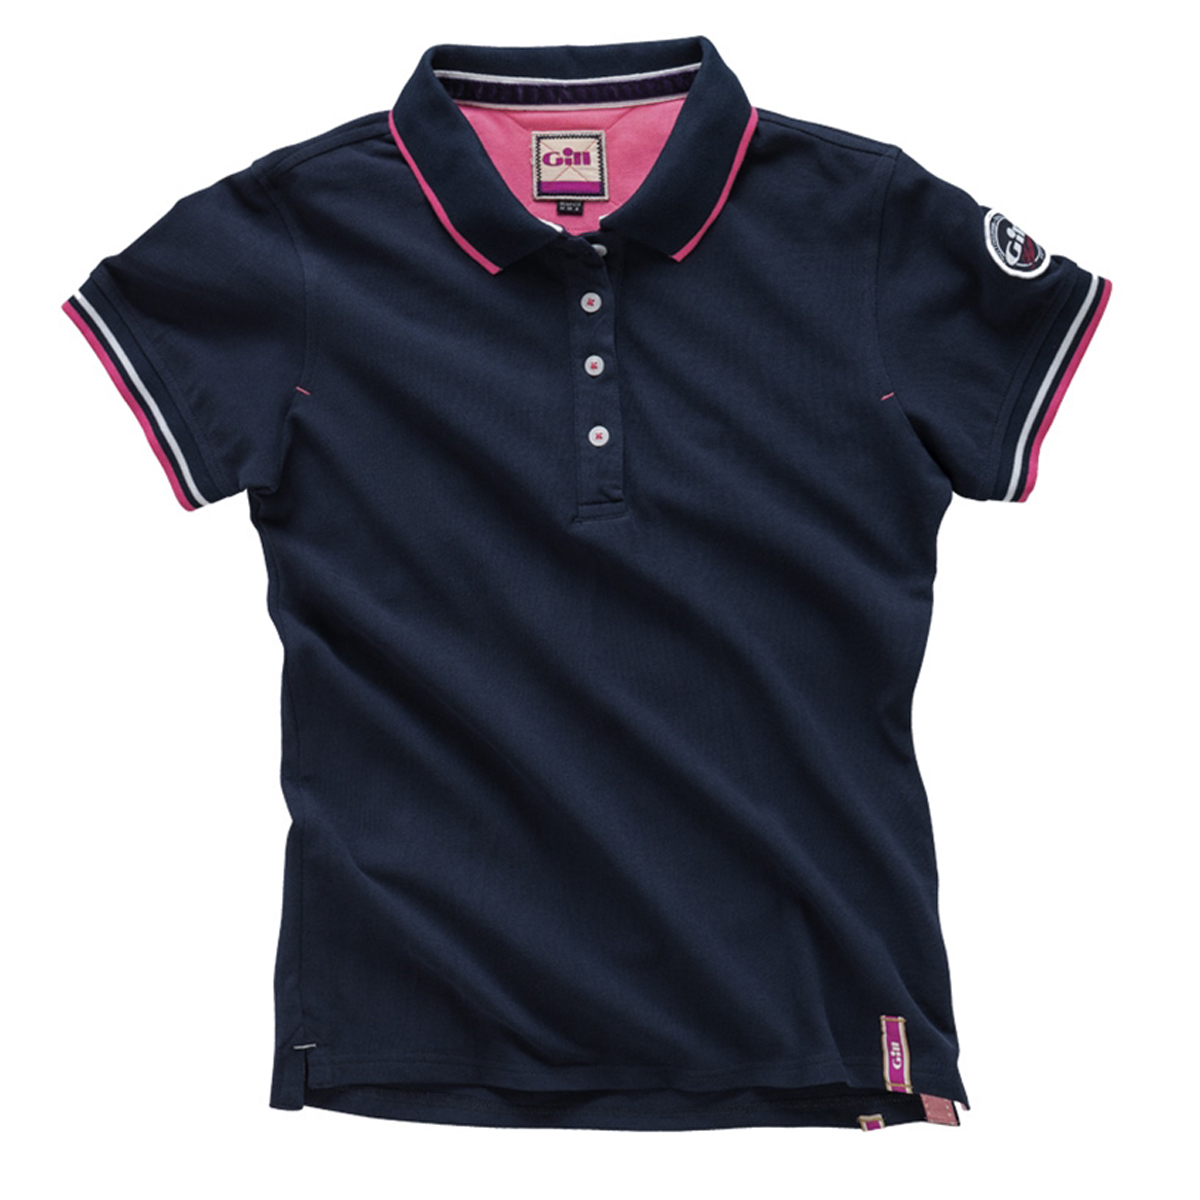 GILL WOMEN'S ELEMENTS POLO (E020)